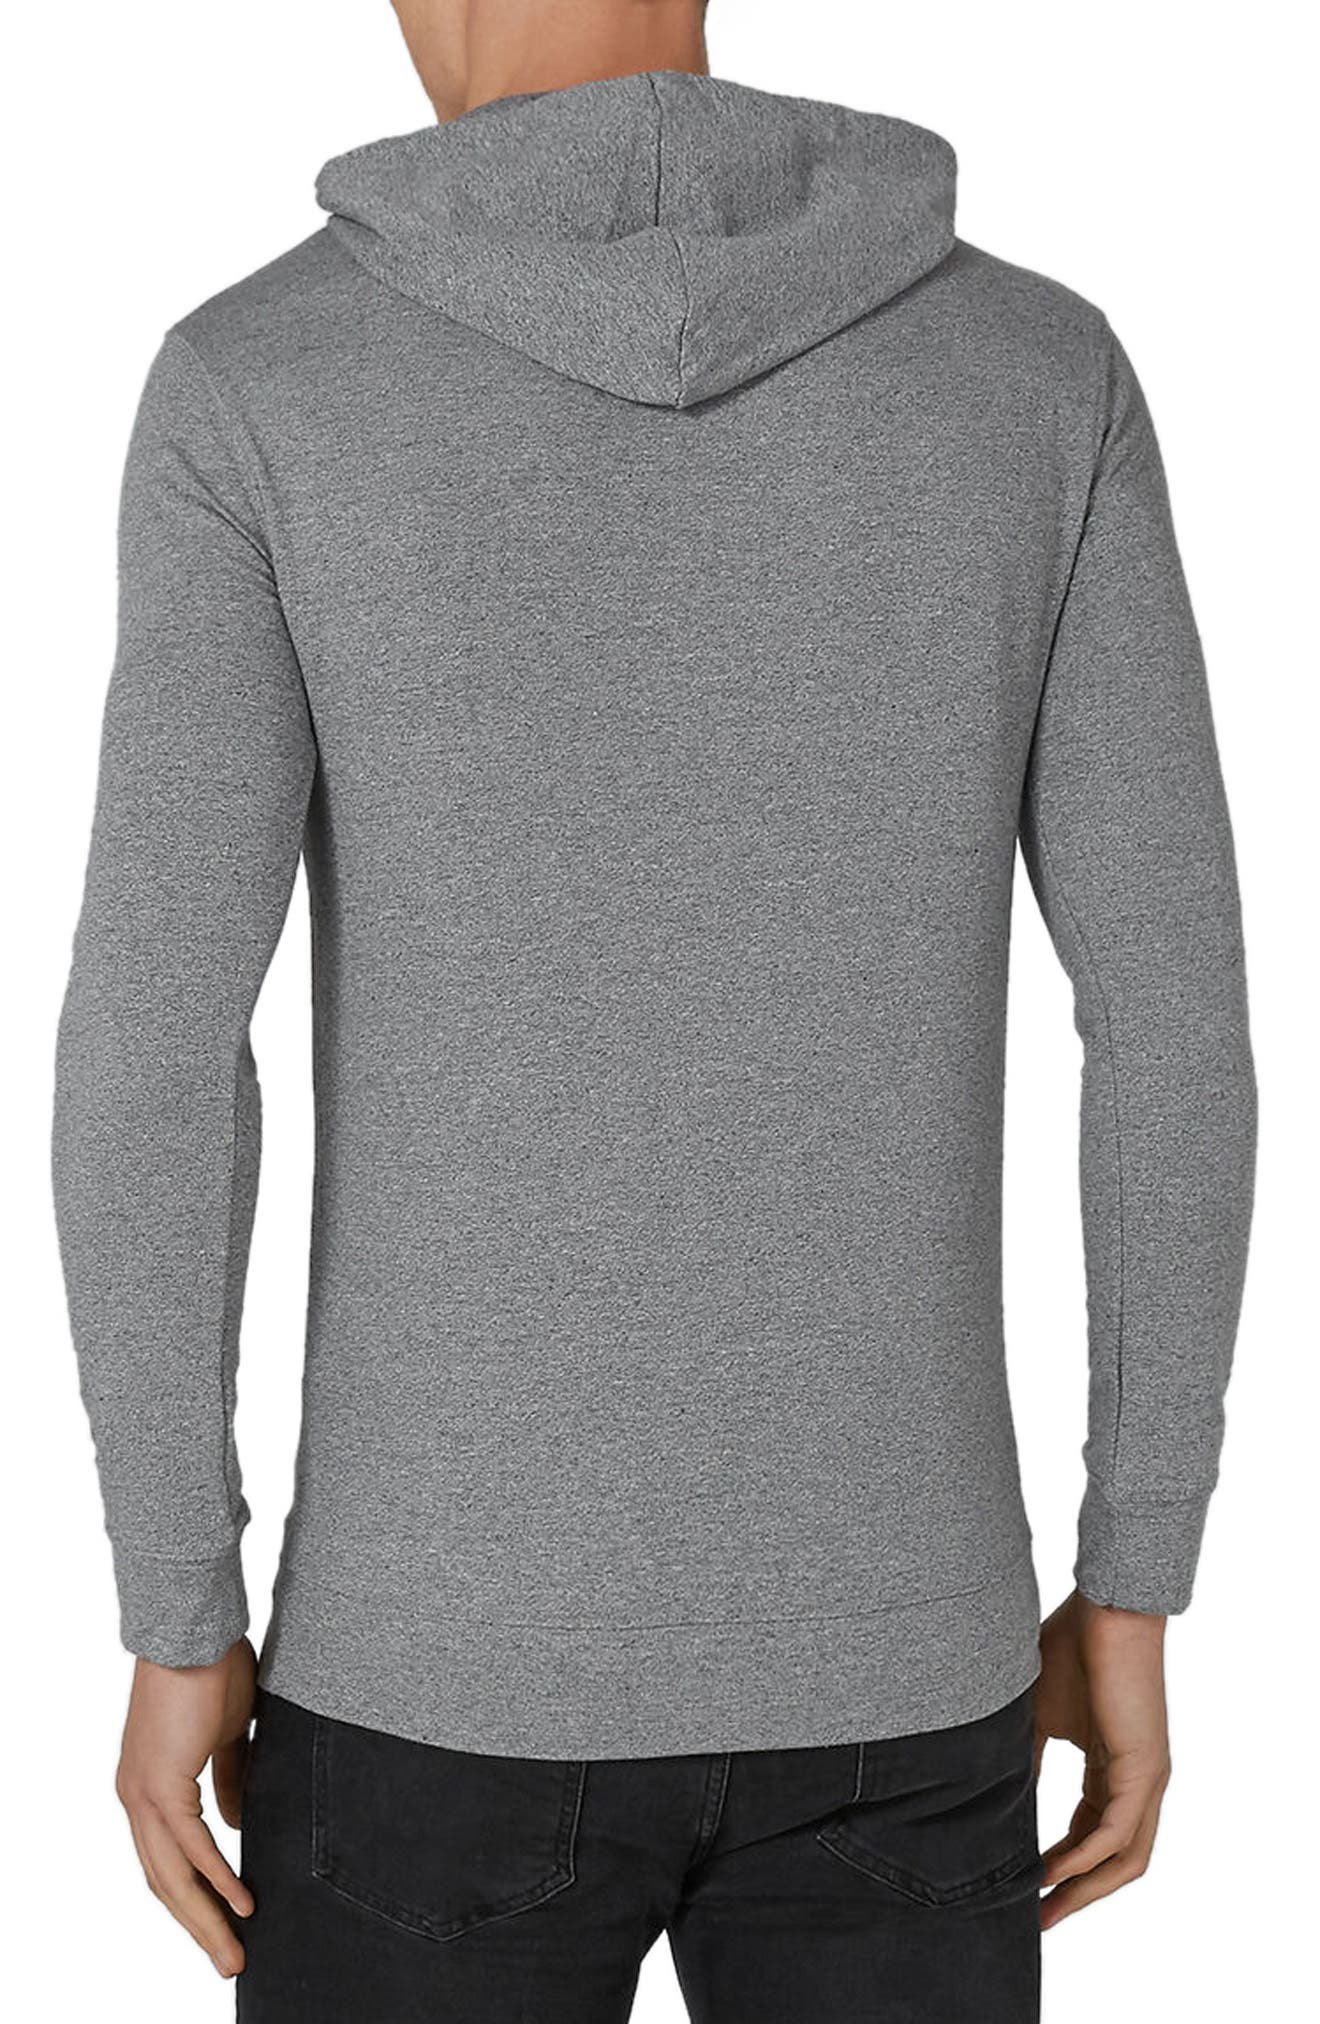 Muscle Fit Hoodie,                             Alternate thumbnail 2, color,                             020